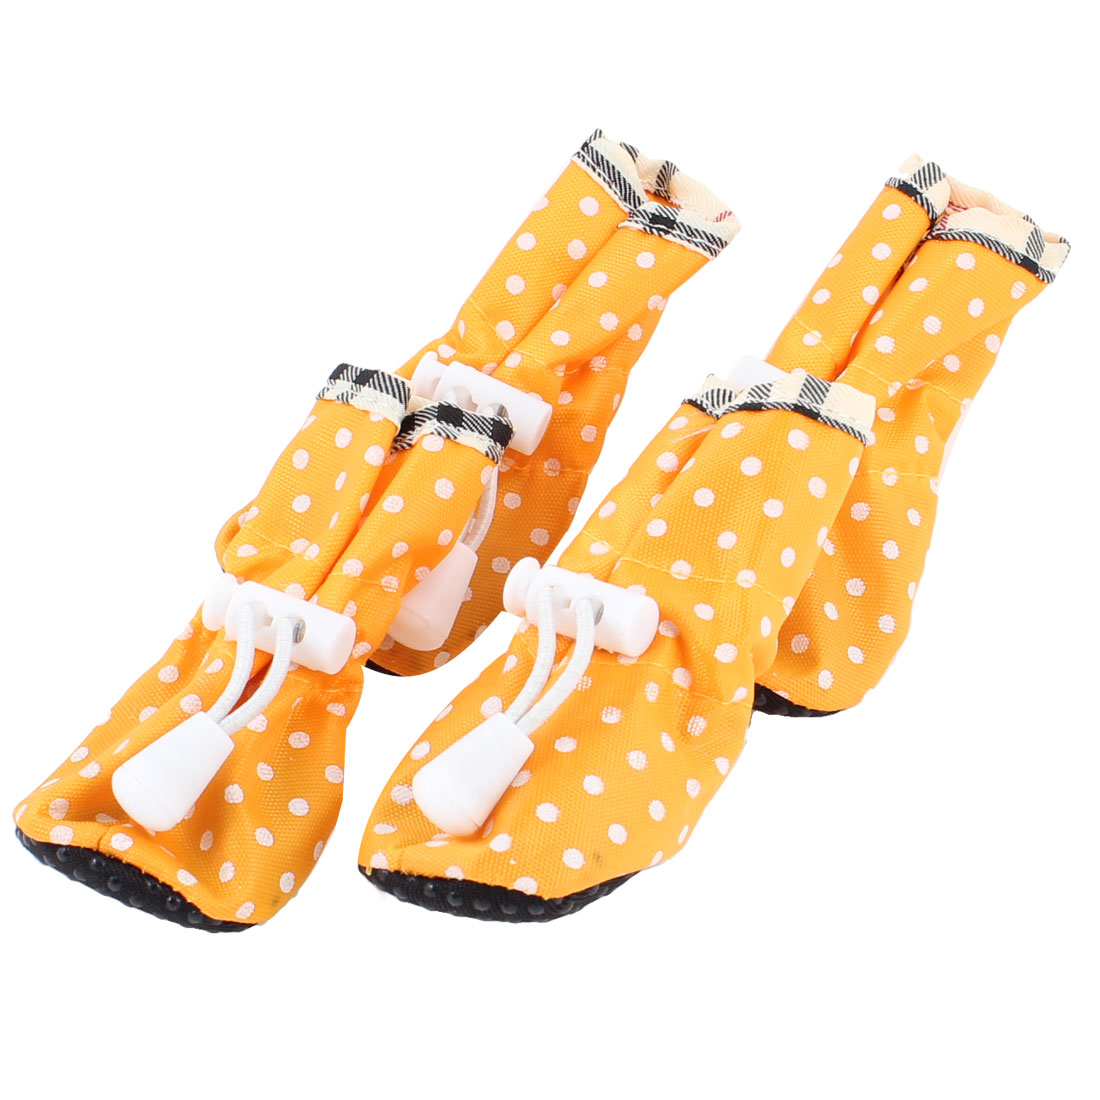 2 Pair Polka Dot Pattern Cat Doggie Drawstring Boots Shoes Orange XS Size 4